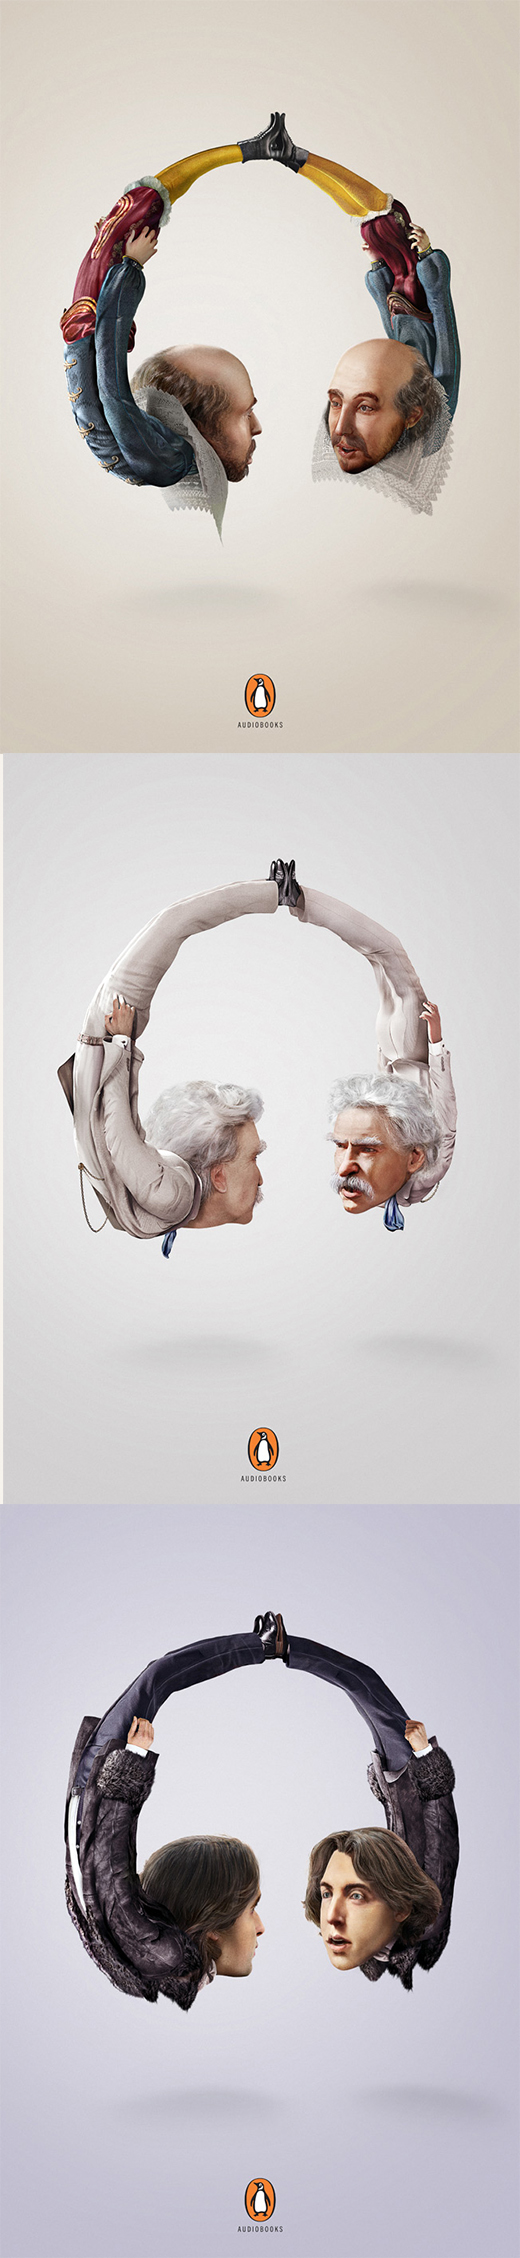 headphone poster